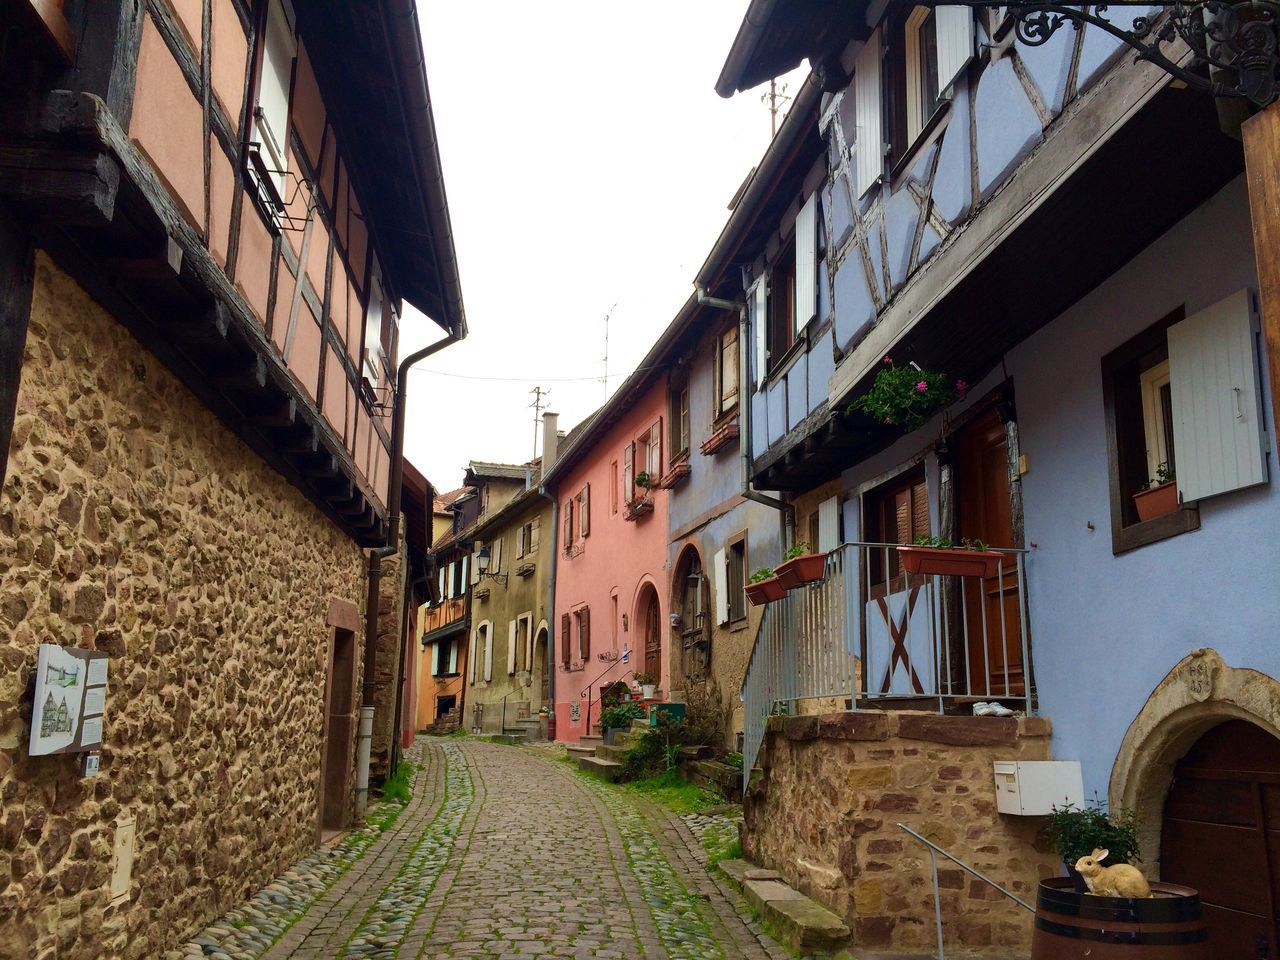 2016 April Alsace-Lorraine Alsace France Village House